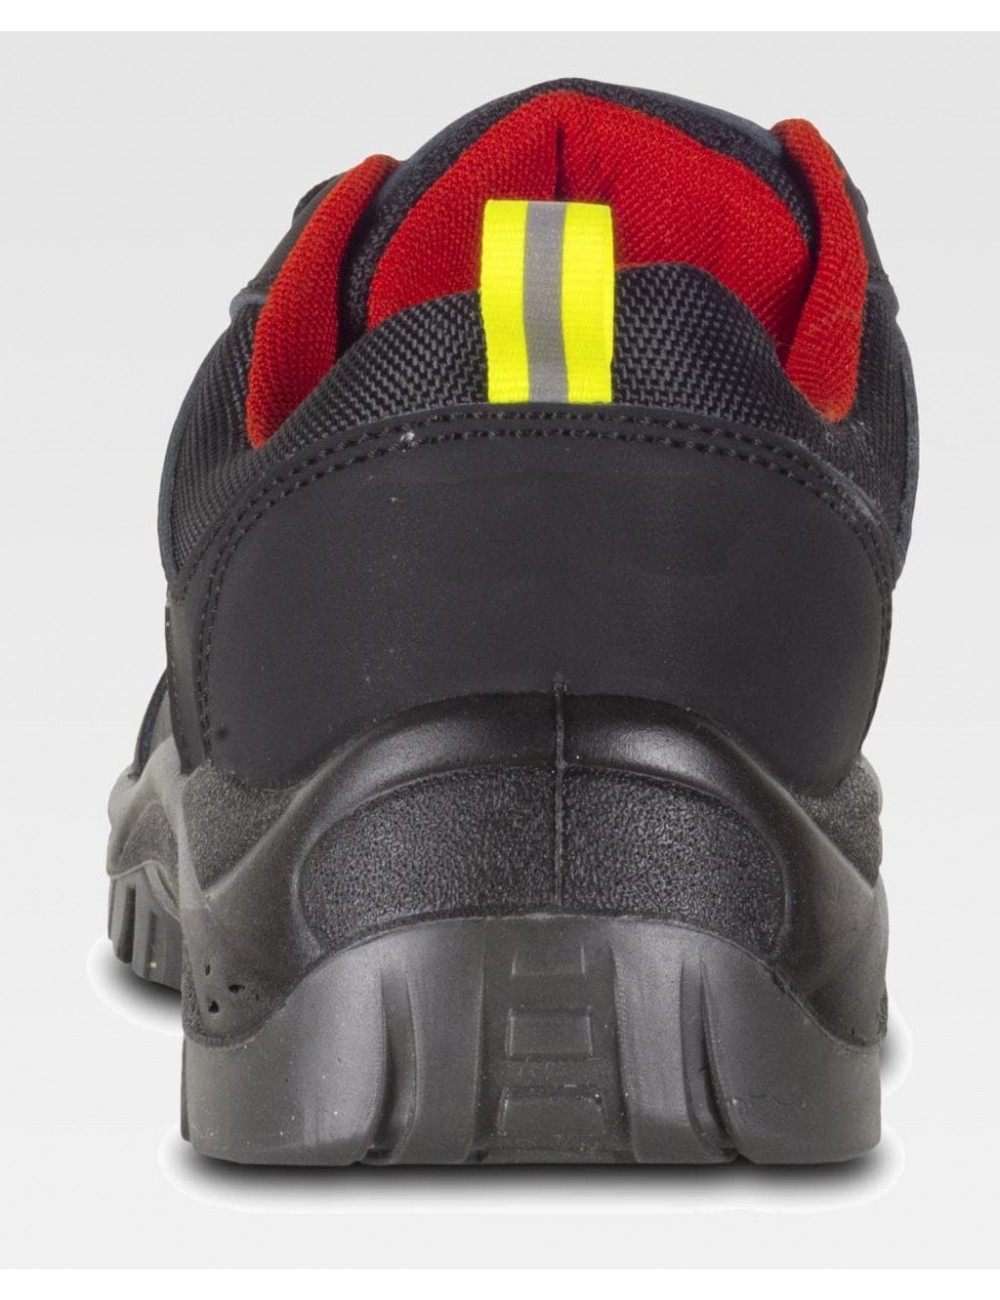 ZAPATO WORK-FORCE  PROTECCION